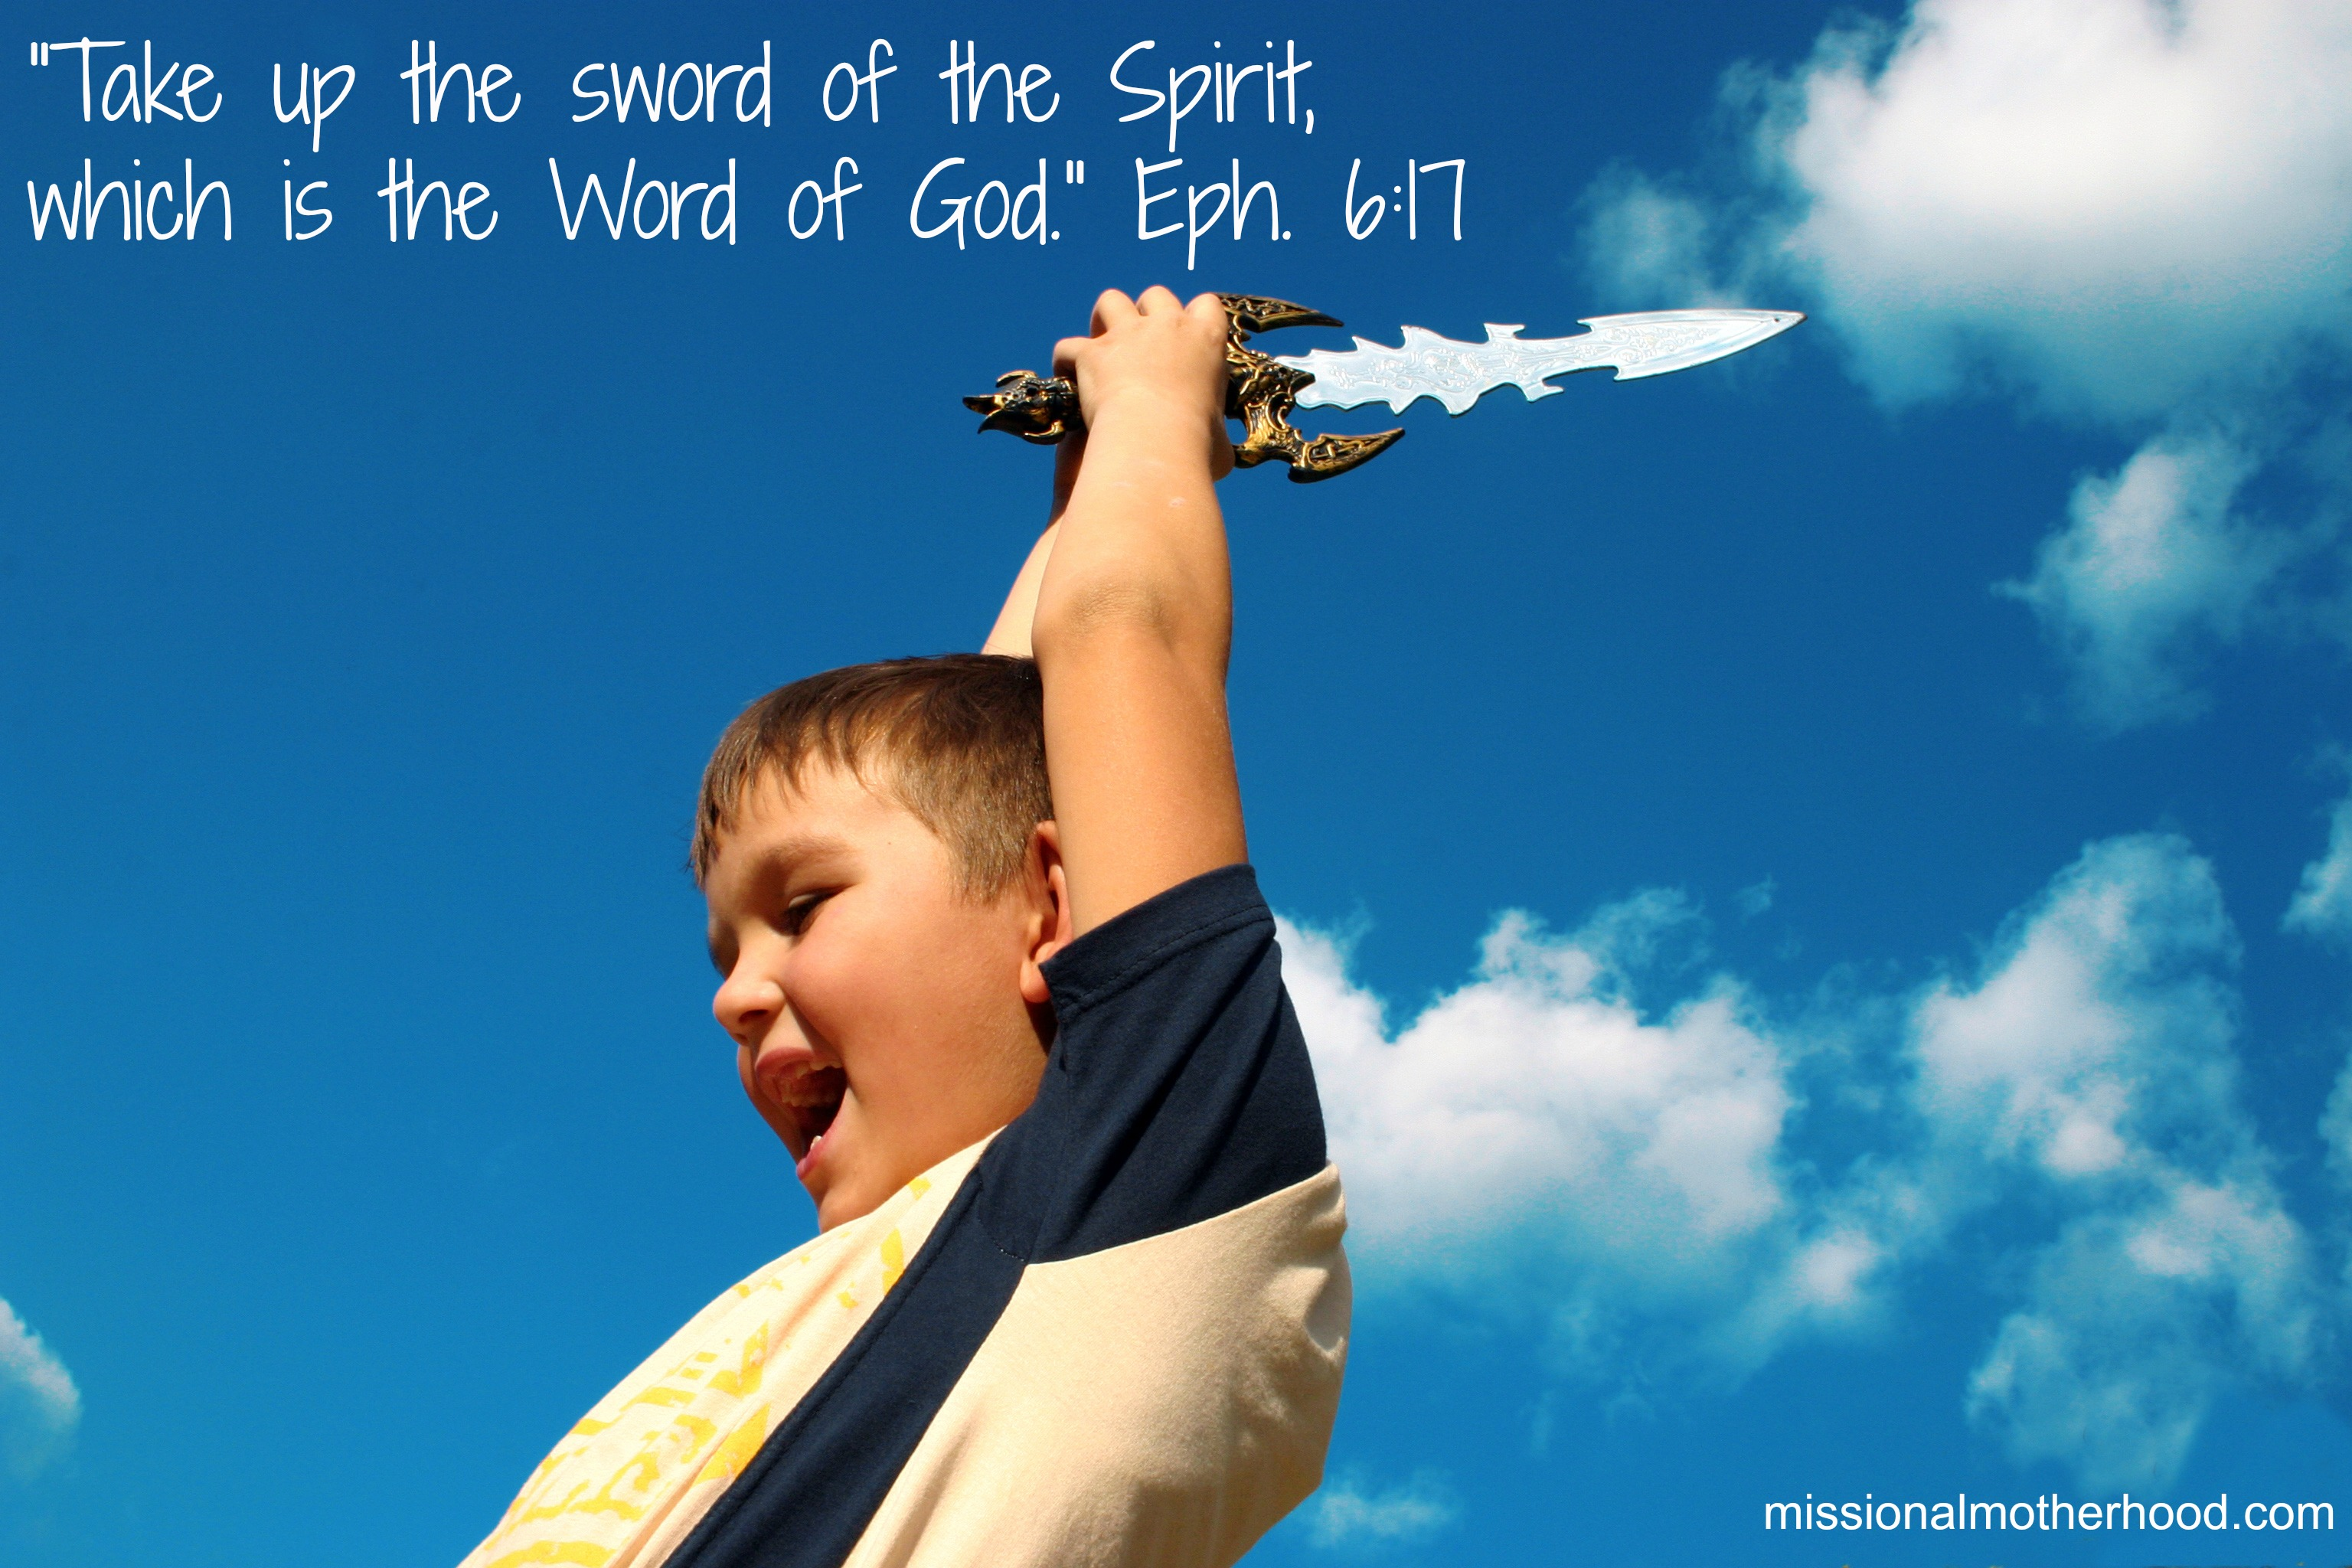 Sword of the Spirit